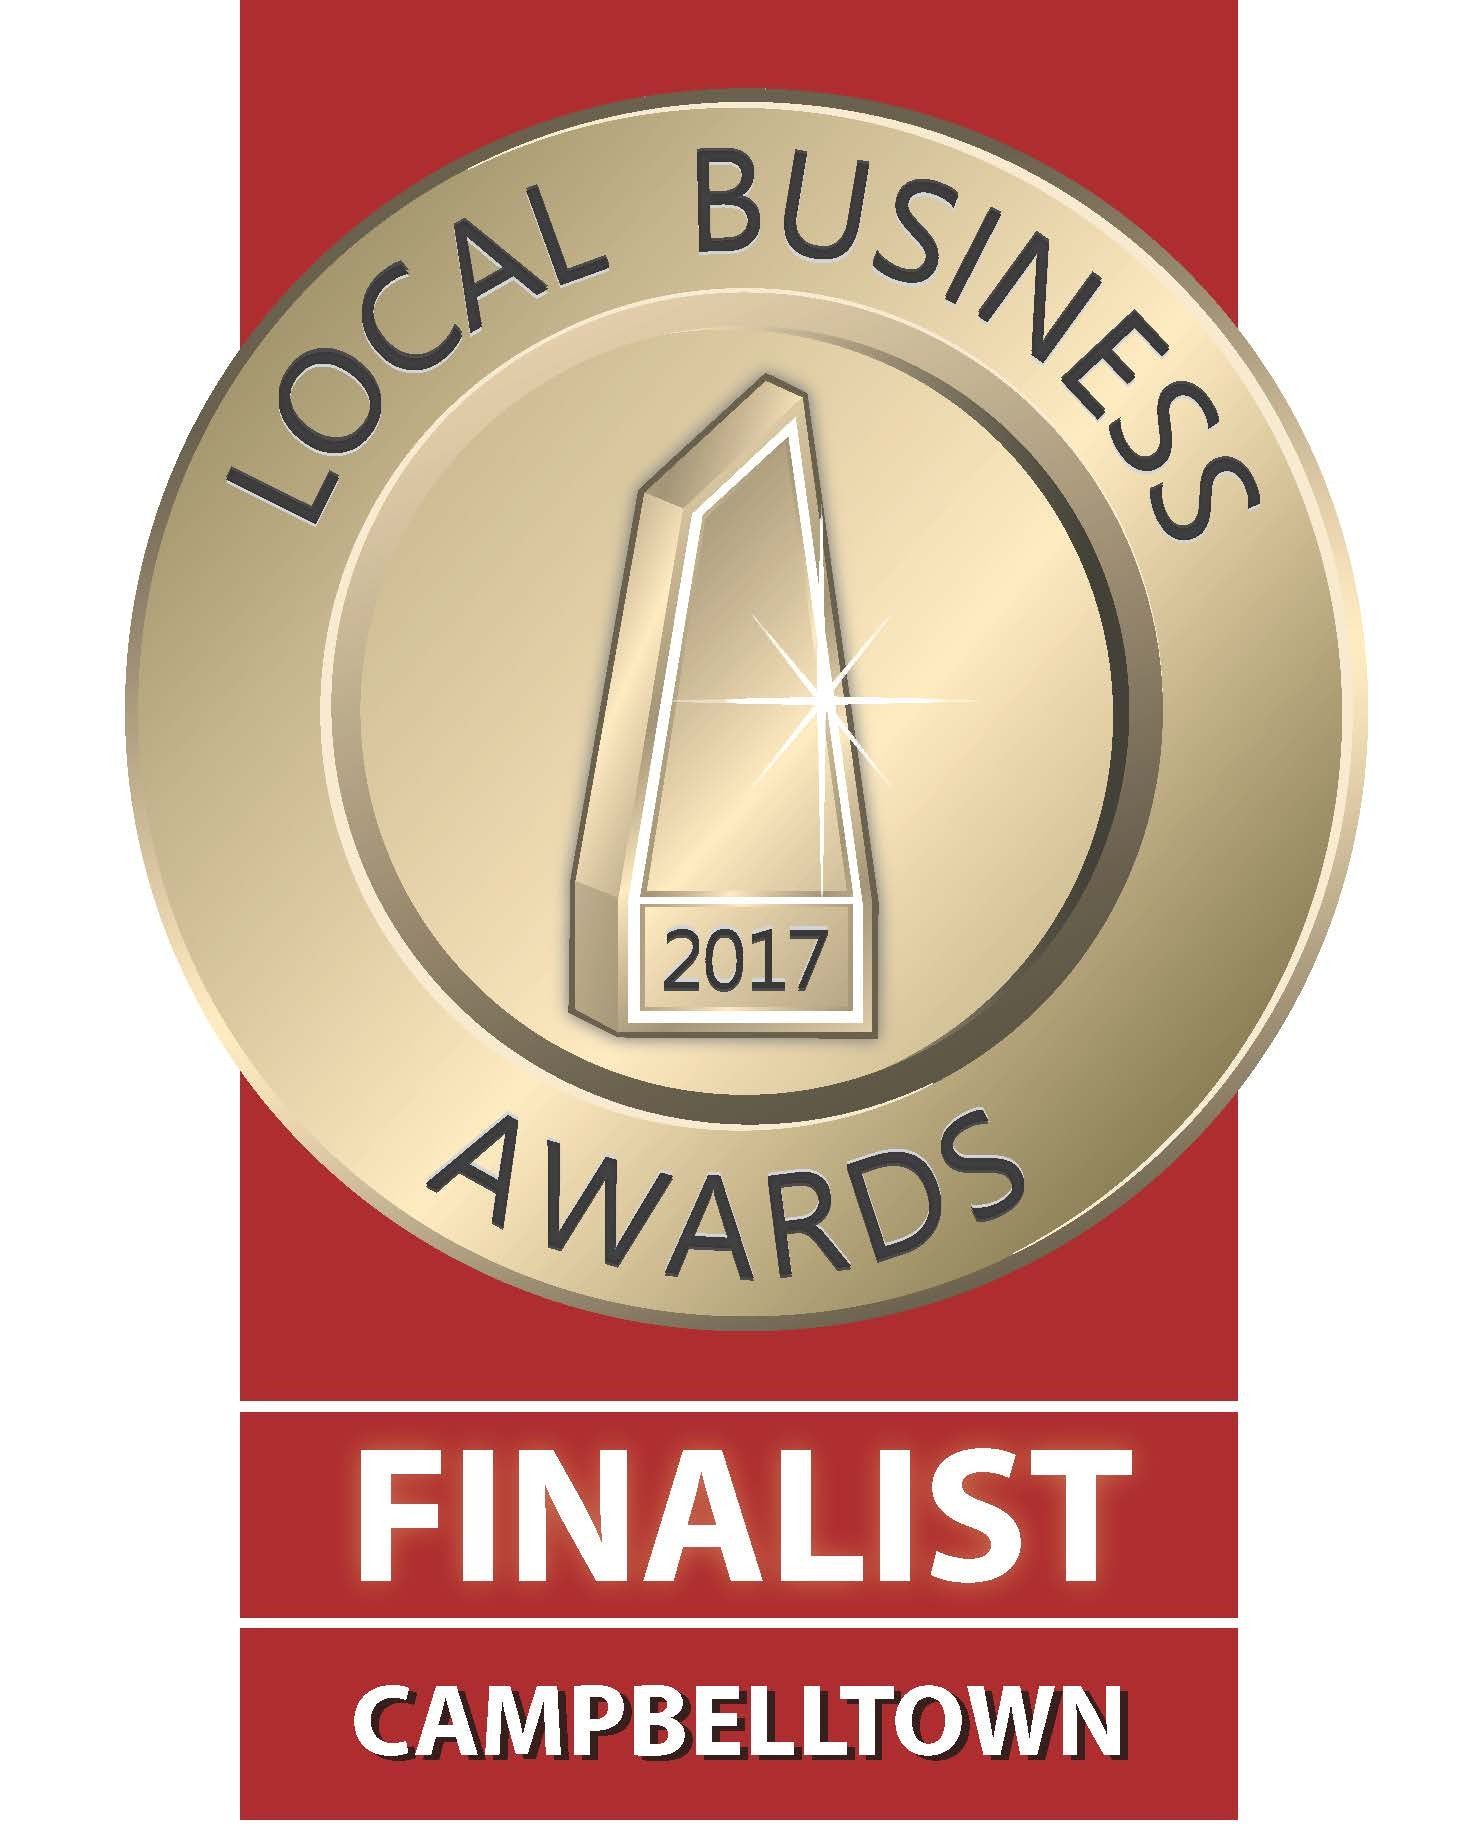 My Bijou are Finalists in the Local Business Awards